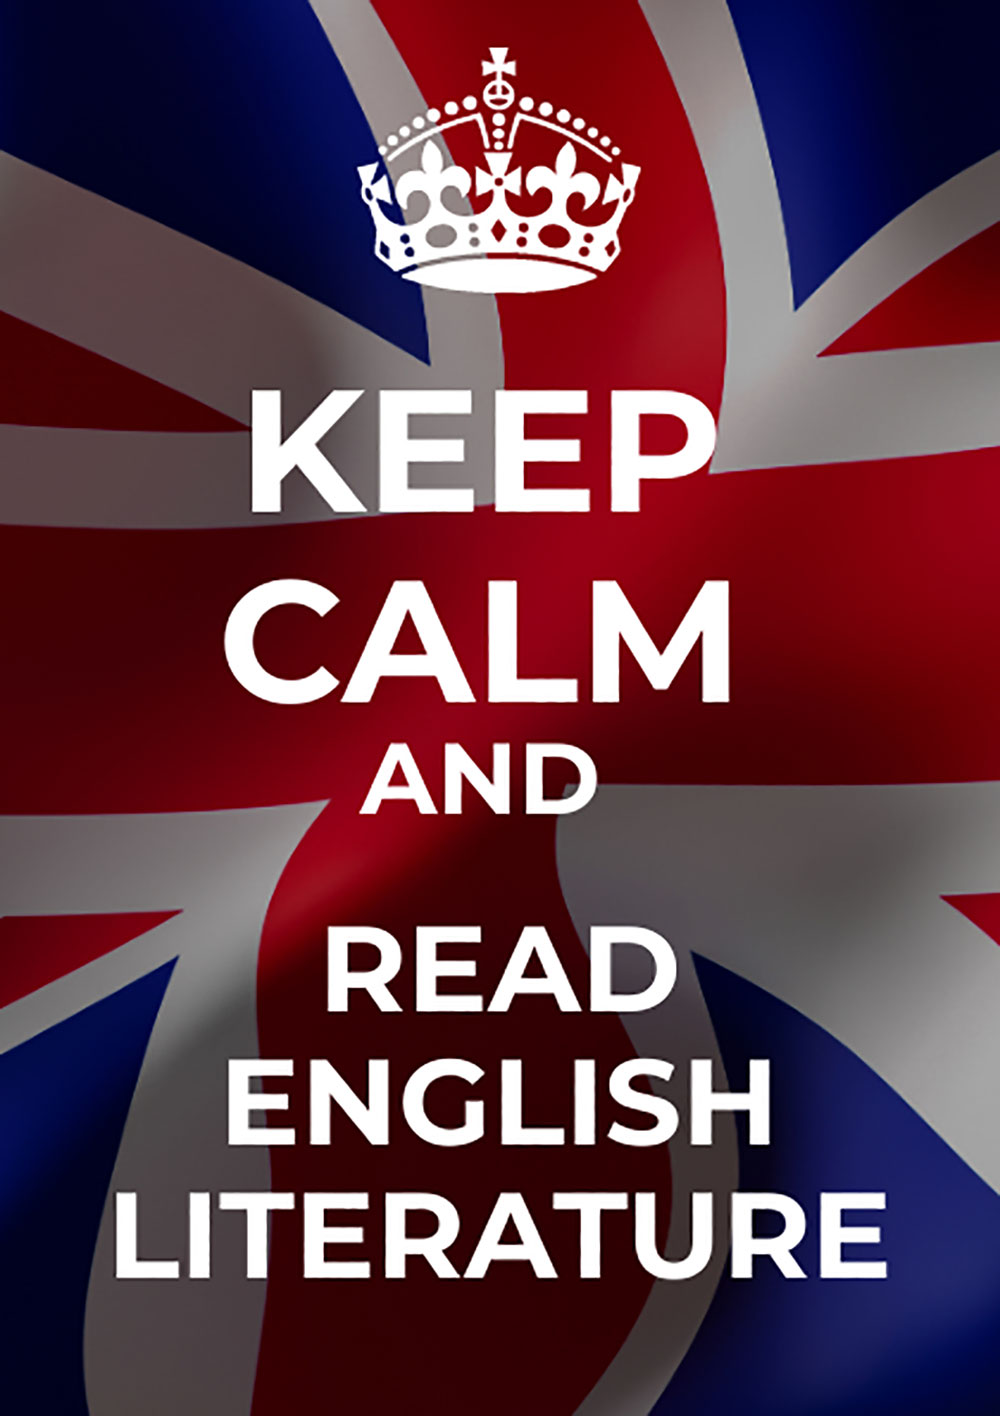 Keep calm and read english literature